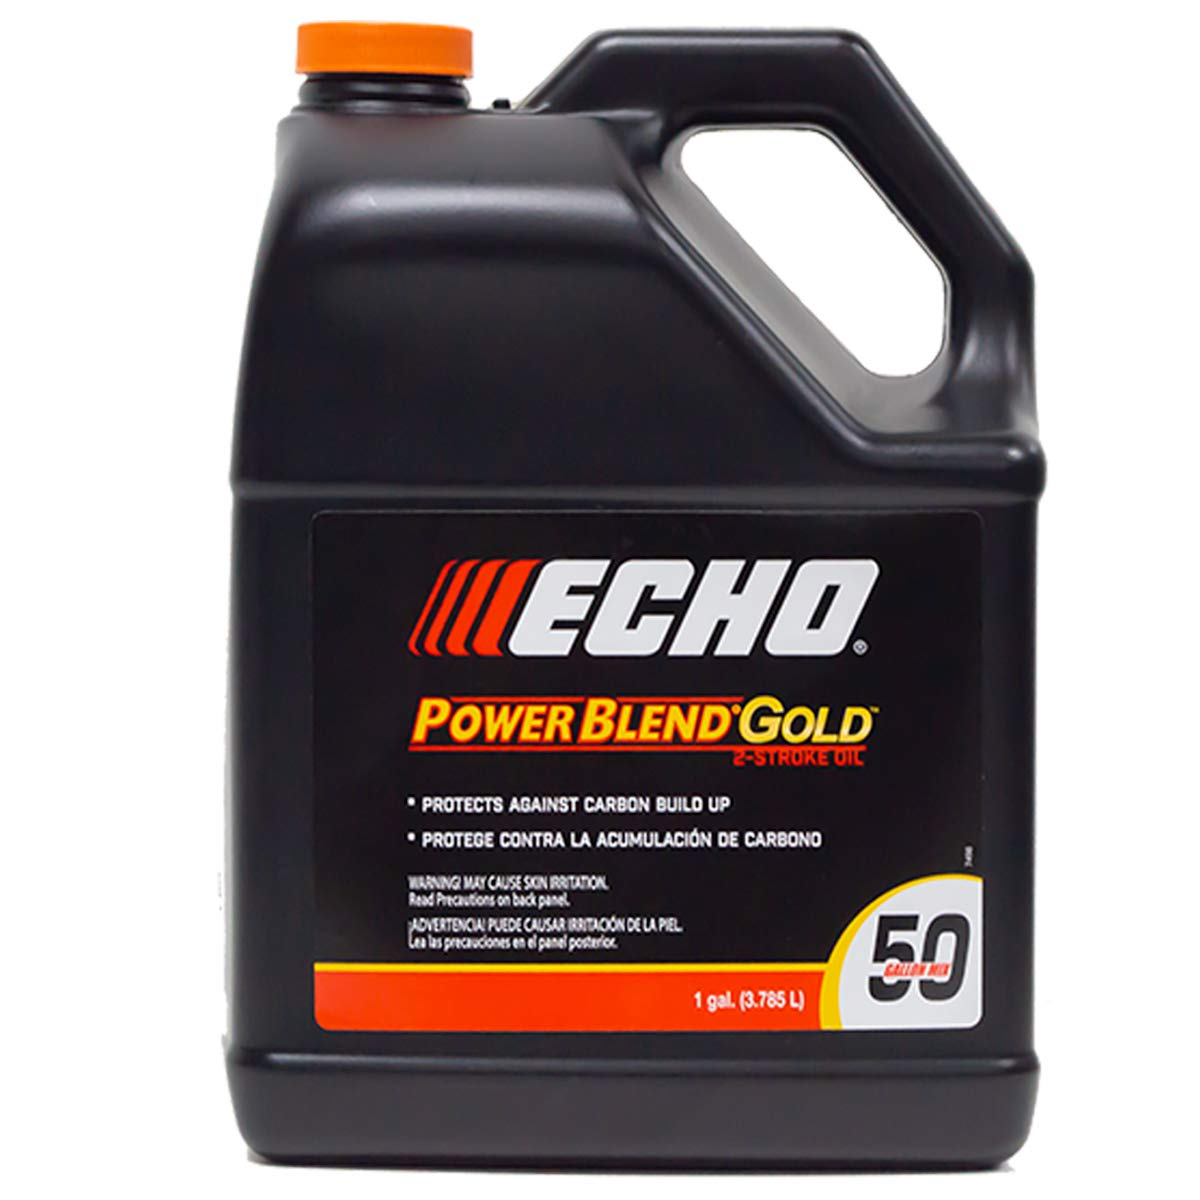 Echo 2-Cycle Engine Oil Mix Extended Life Power Blend 6450050 (1) Gallon by Replaces Echo